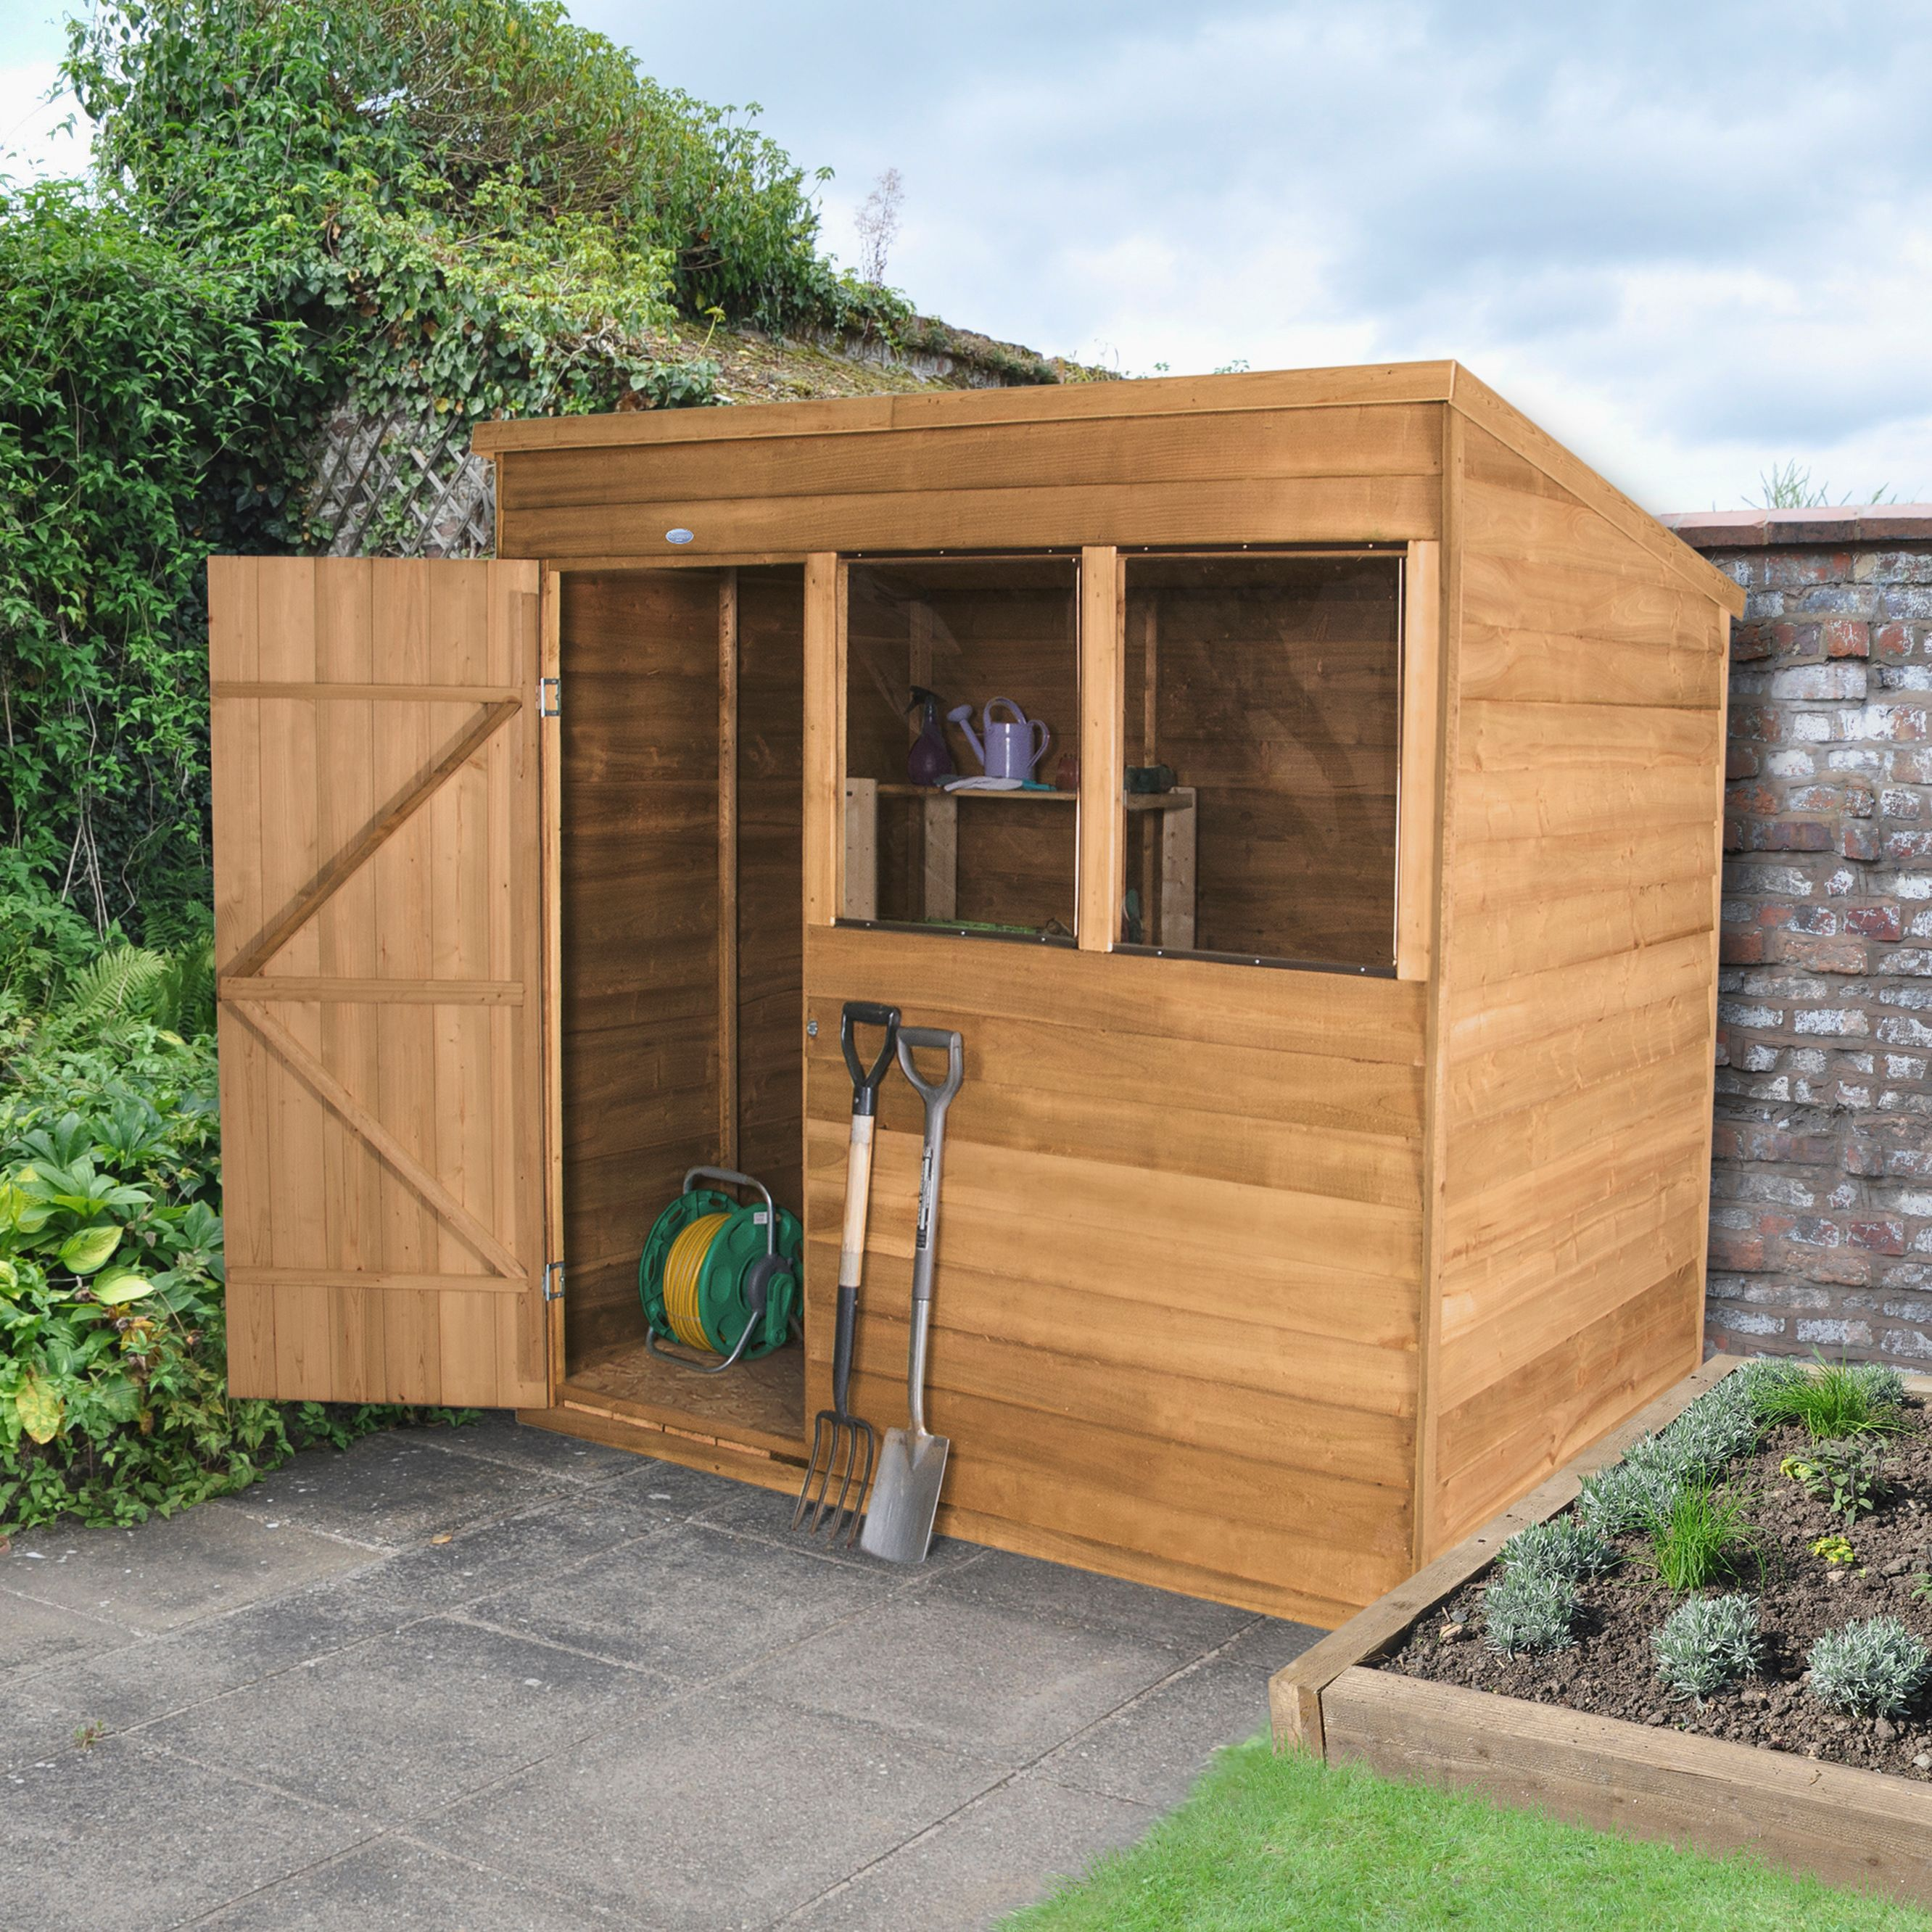 7x5 forest pent overlap wooden shed departments diy at bq - Garden Sheds 7x5